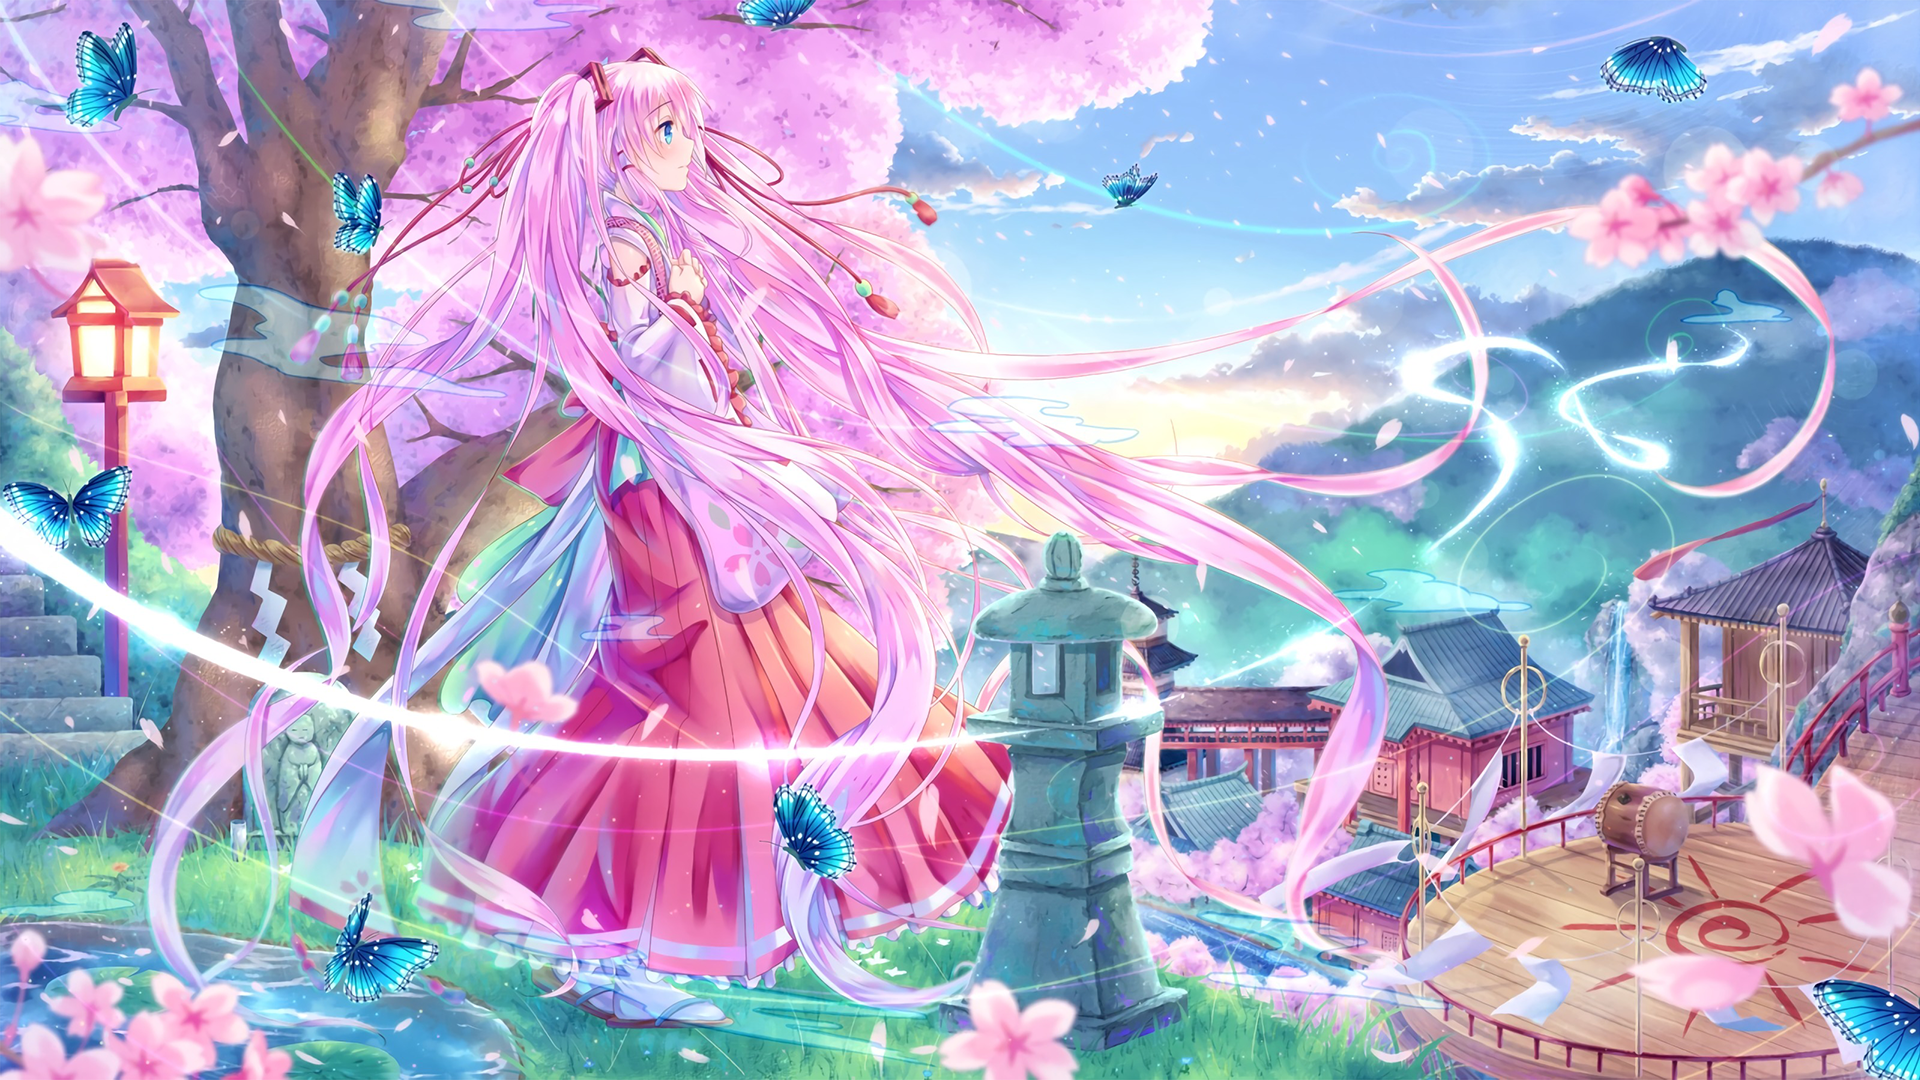 Vocaloid hd wallpaper background image 1920x1080 id - Anime backdrop wallpaper ...